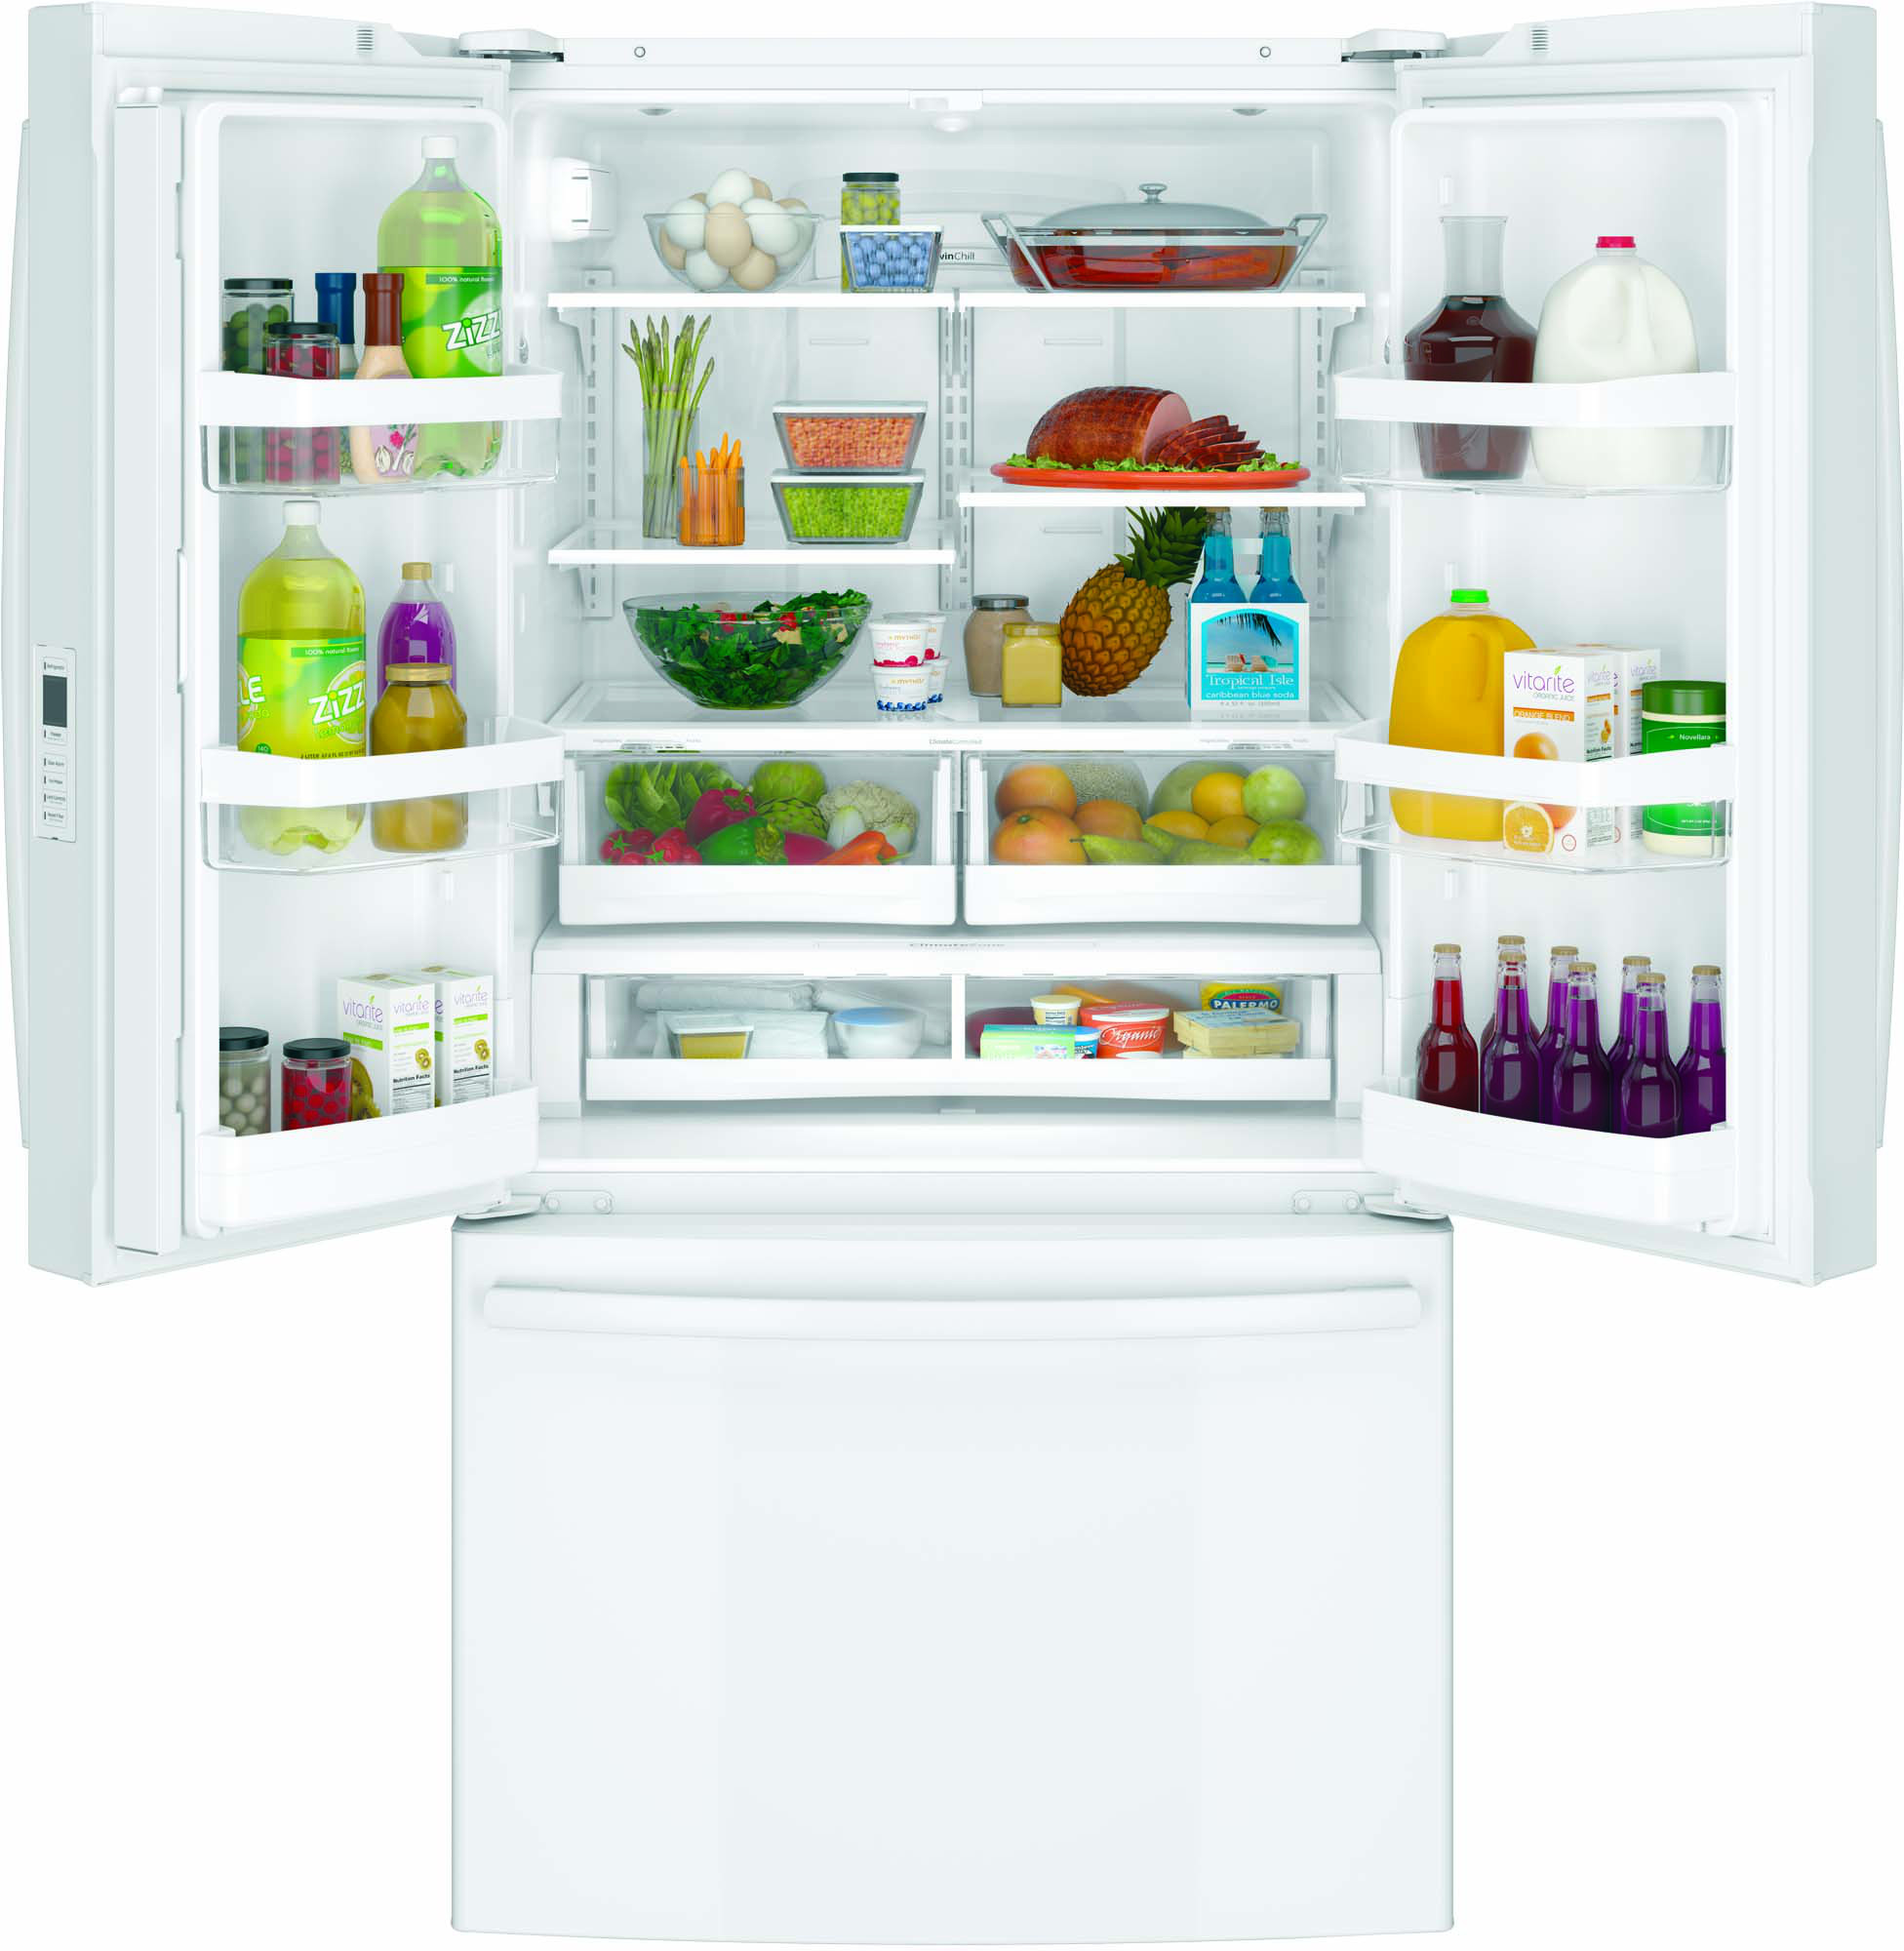 GE Appliances GNE29GGHWW 28.5 cu. ft. French-Door Refrigerator - White